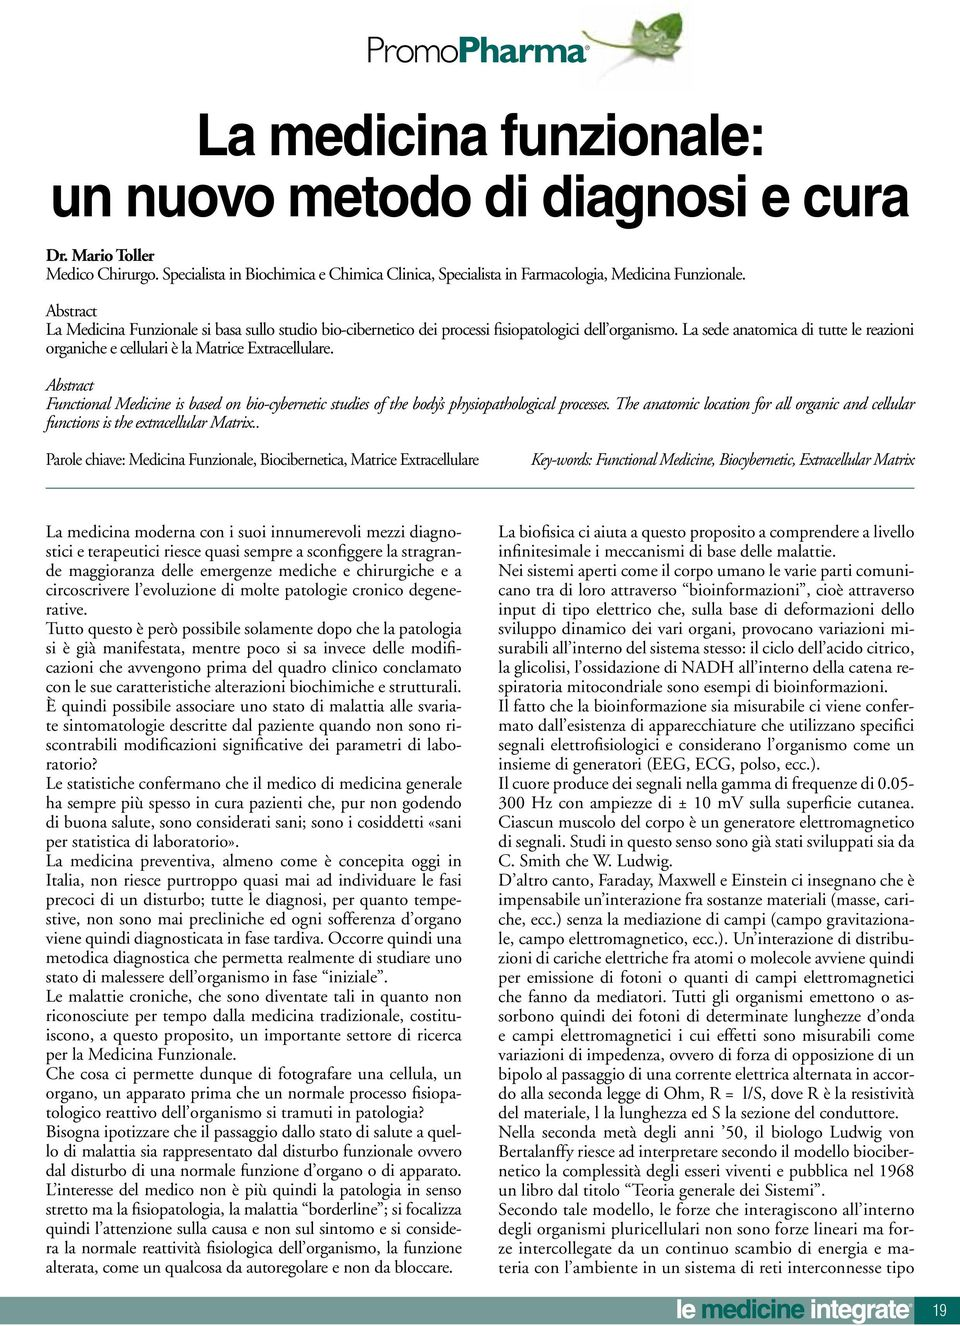 La sede anatomica di tutte le reazioni organiche e cellulari è la Matrice Extracellulare. Abstract Functional Medicine is based on bio-cybernetic studies of the body s physiopathological processes.